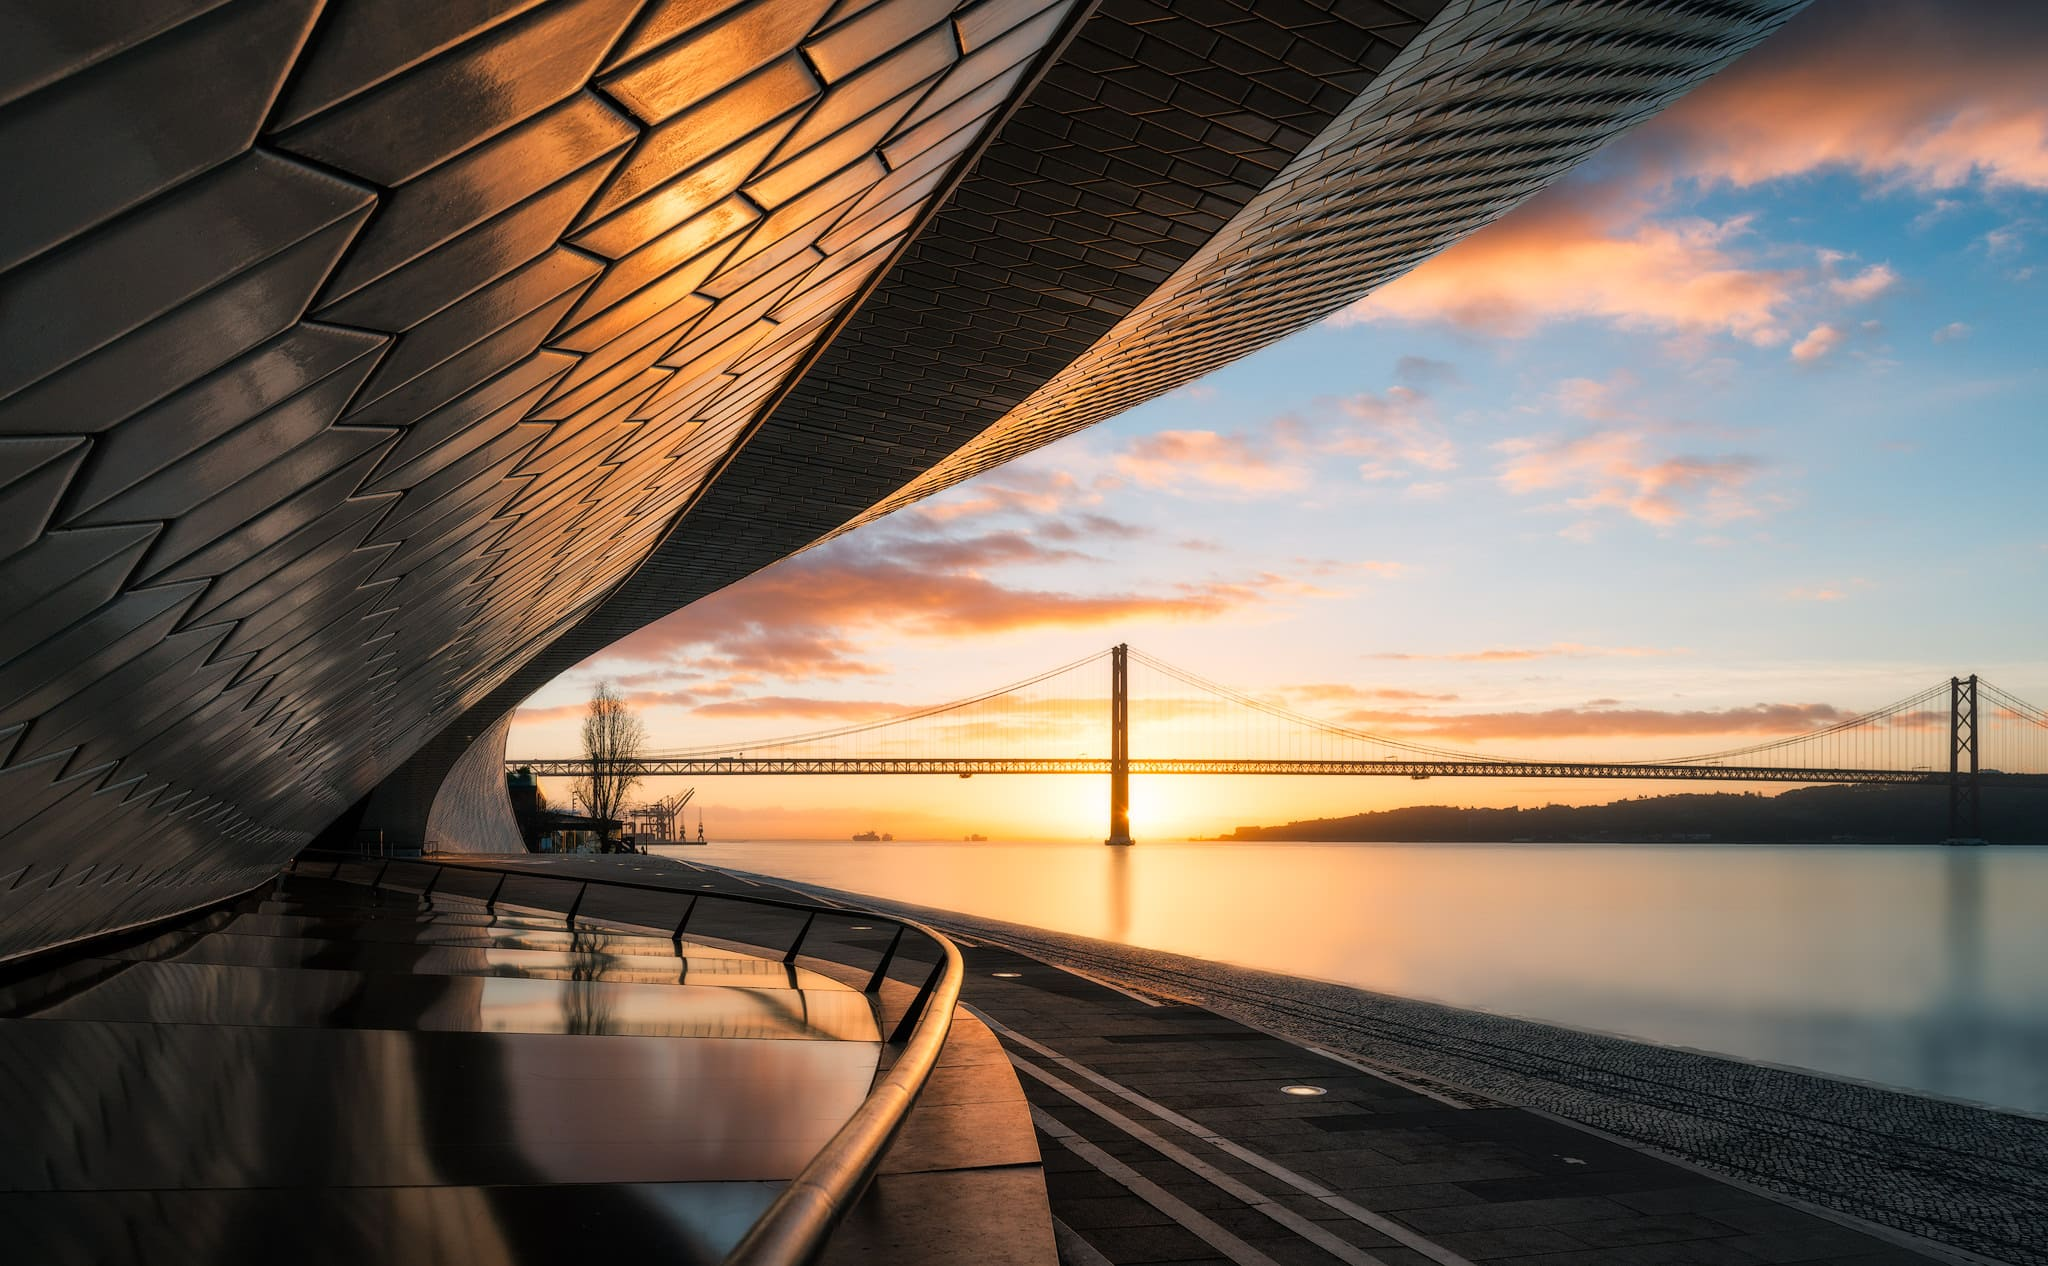 Museum of Art, Architecture and Technology (MAAT) in Lisbon at sunrise